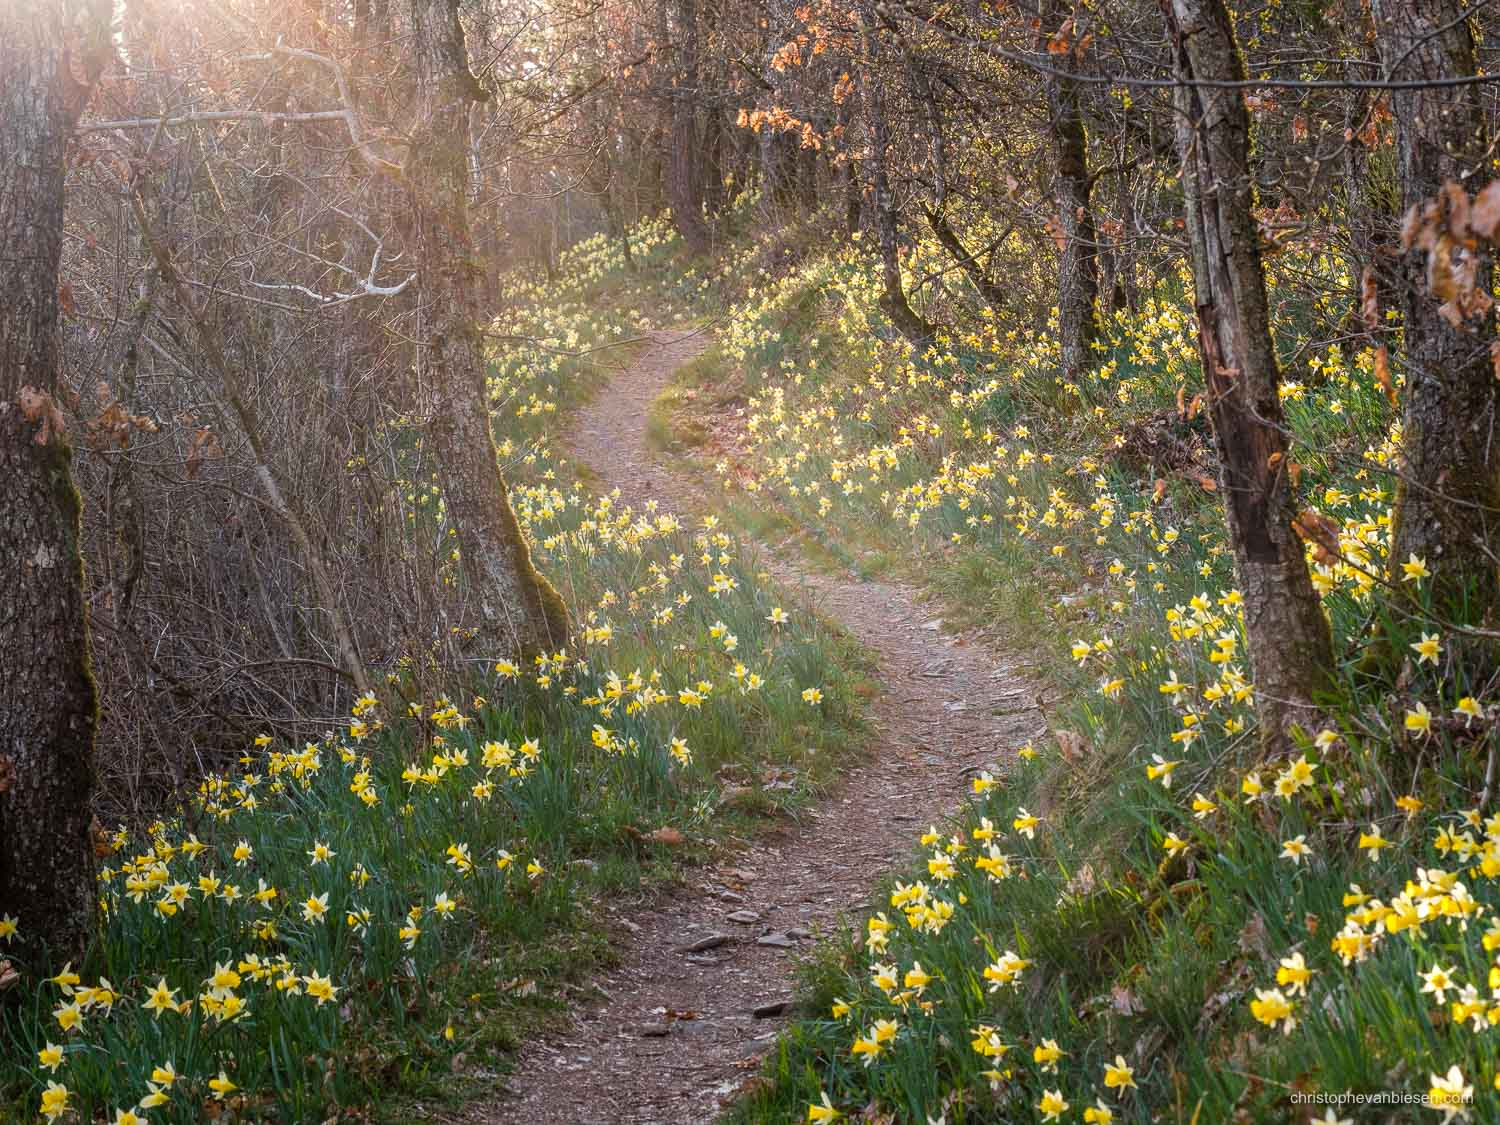 Luxembourg - The Via Botanica, also know as the path of the daffodils in Lellingen, Kiischpelt, Oesling, Luxembourg - Golden Spring